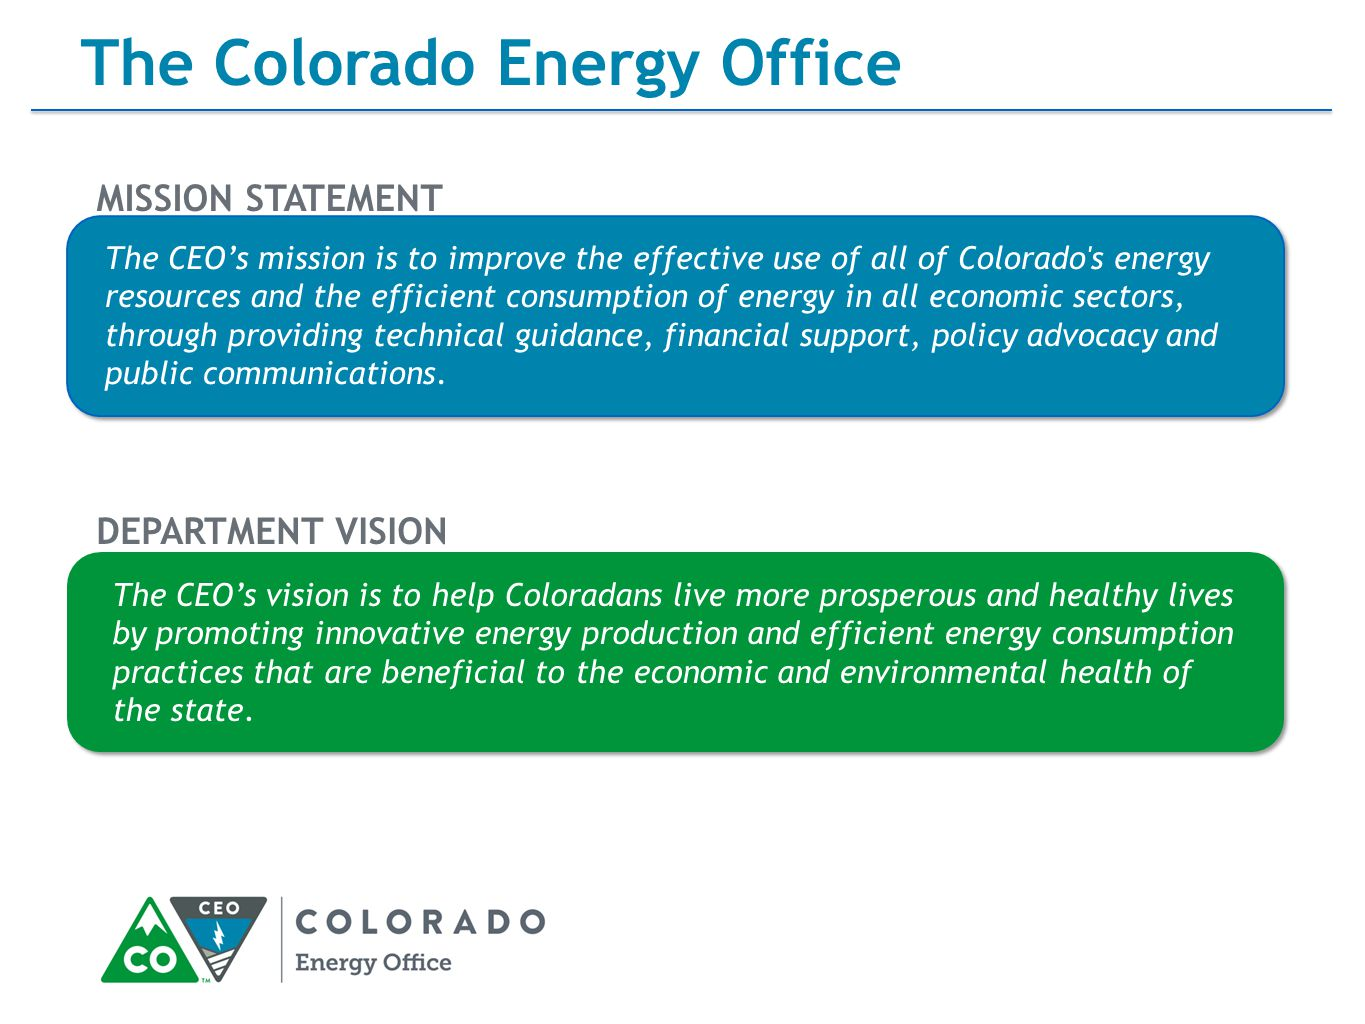 The CEO's vision is to help Coloradans live more prosperous and healthy lives by promoting innovative energy production and efficient energy consumption practices that are beneficial to the economic and environmental health of the state.